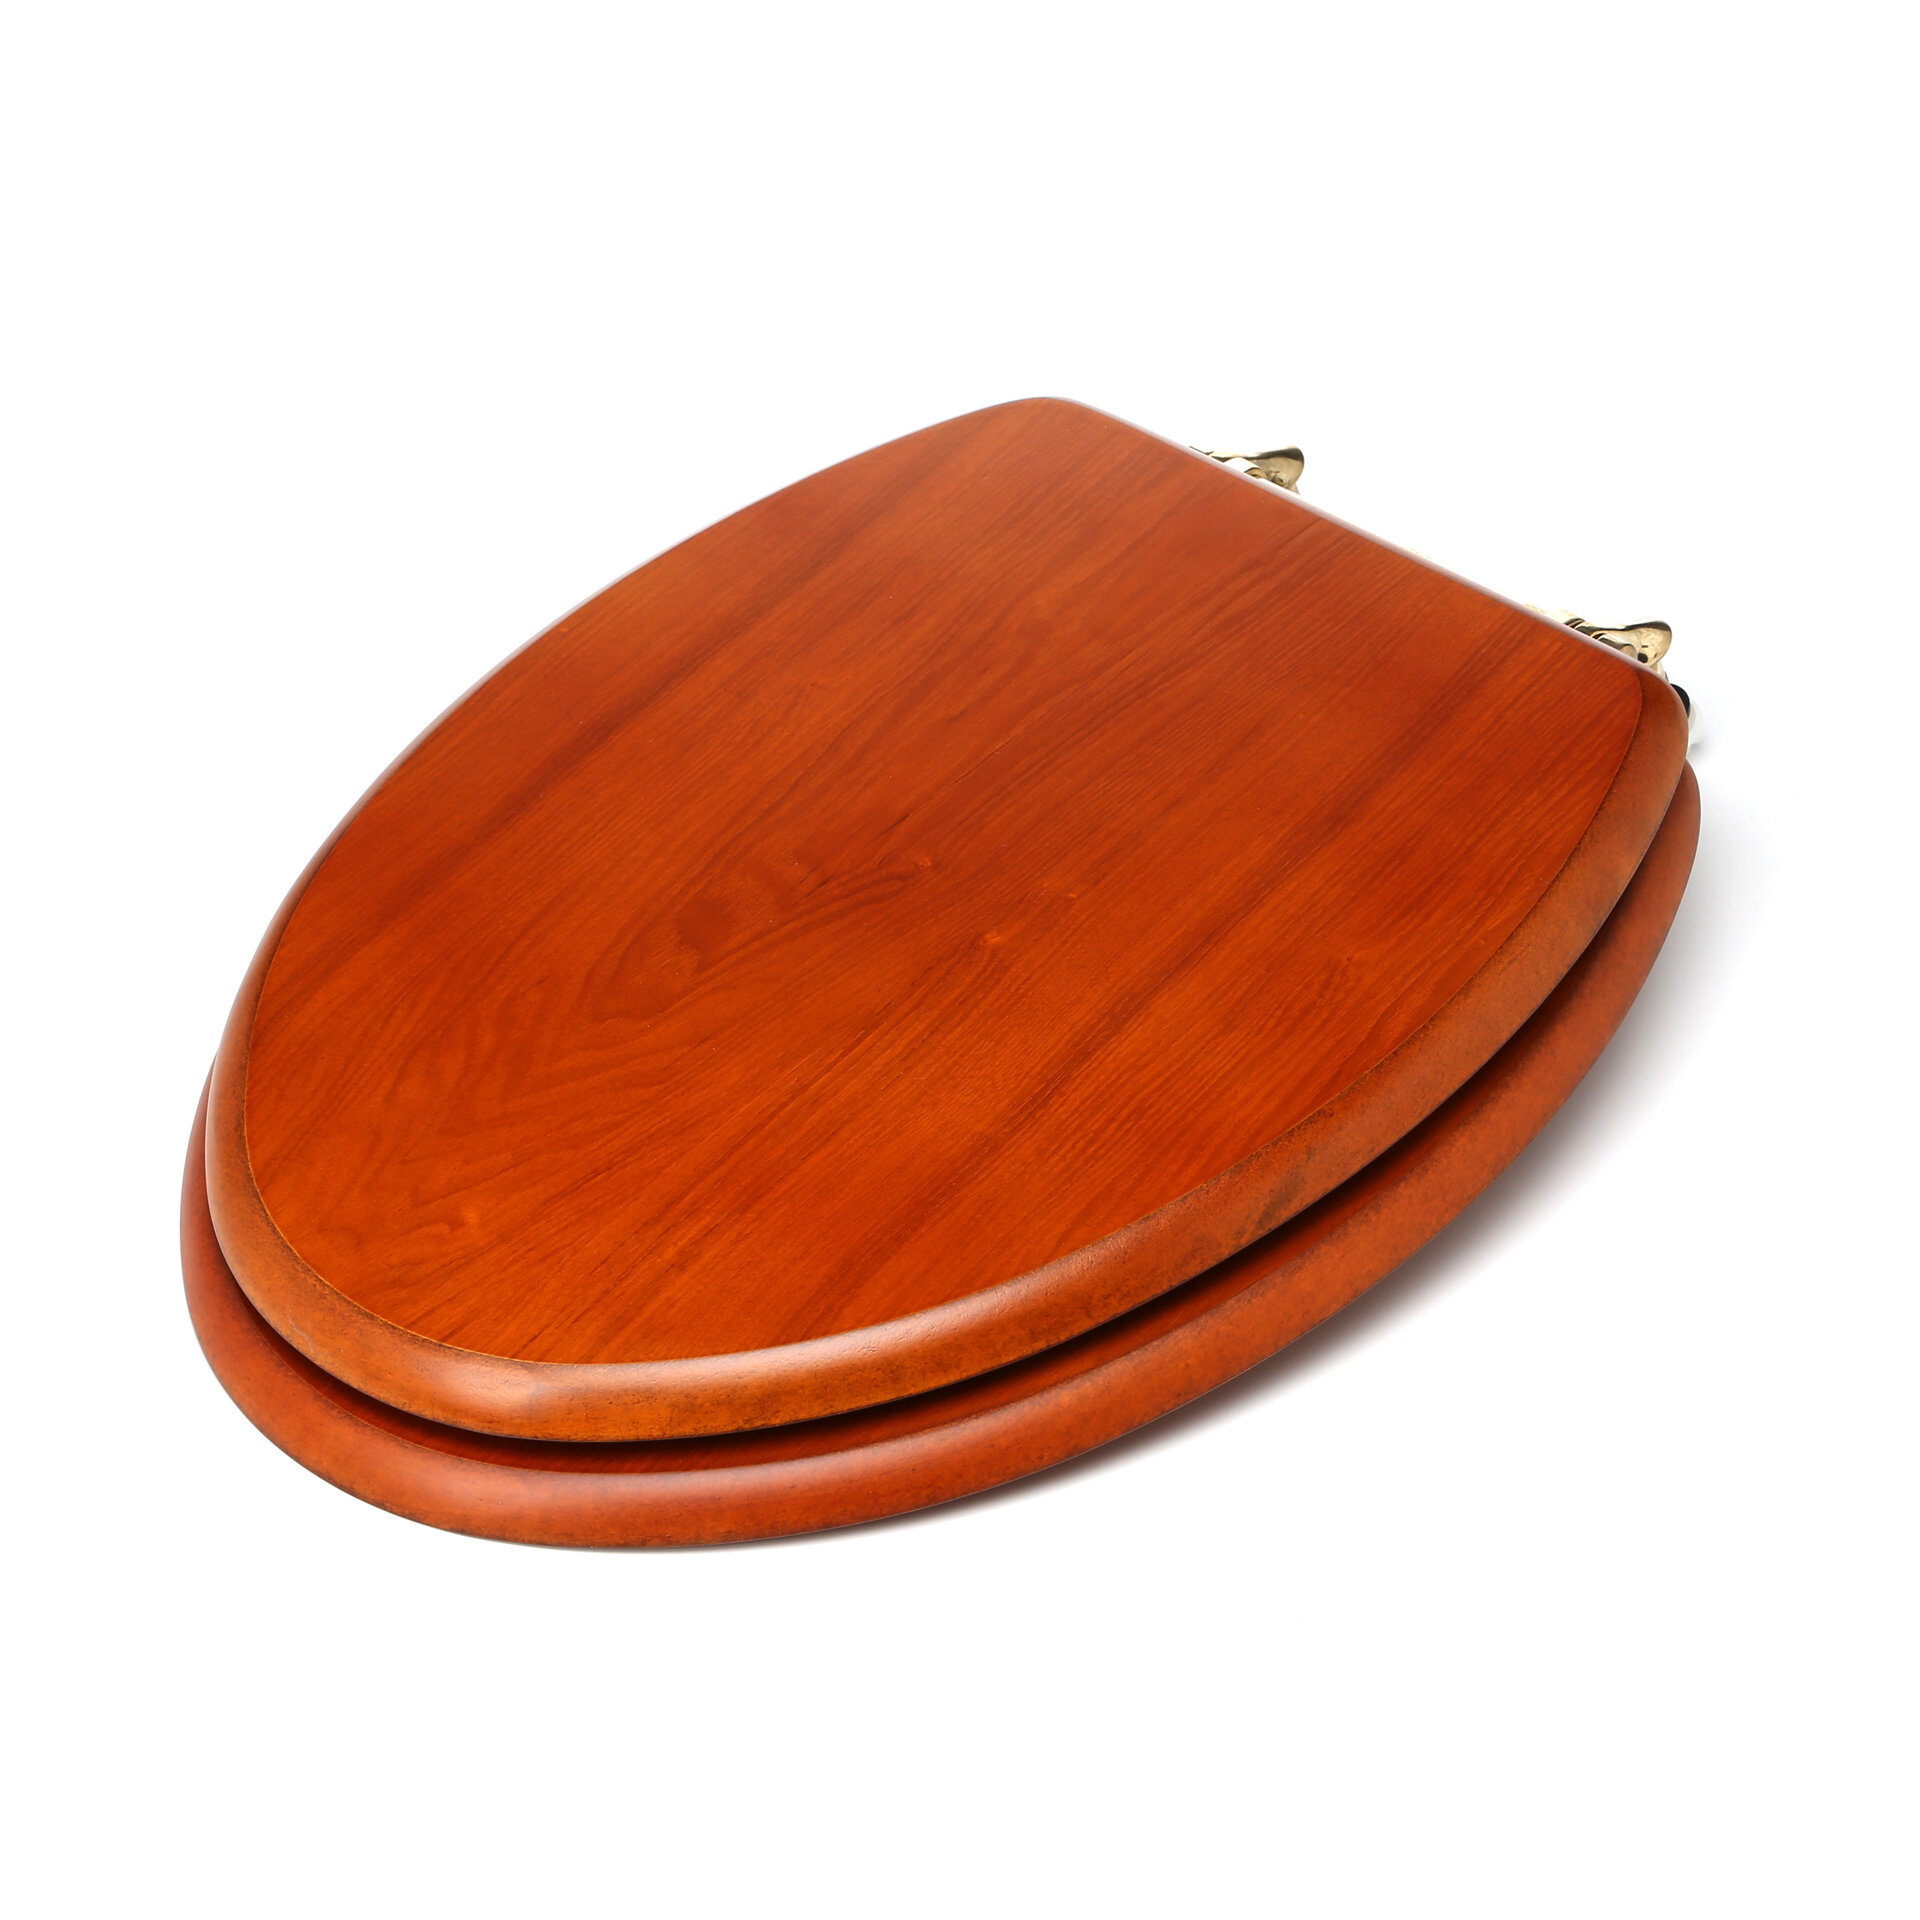 Astonishing Decorative Wood Elongated Toilet Seat Unemploymentrelief Wooden Chair Designs For Living Room Unemploymentrelieforg